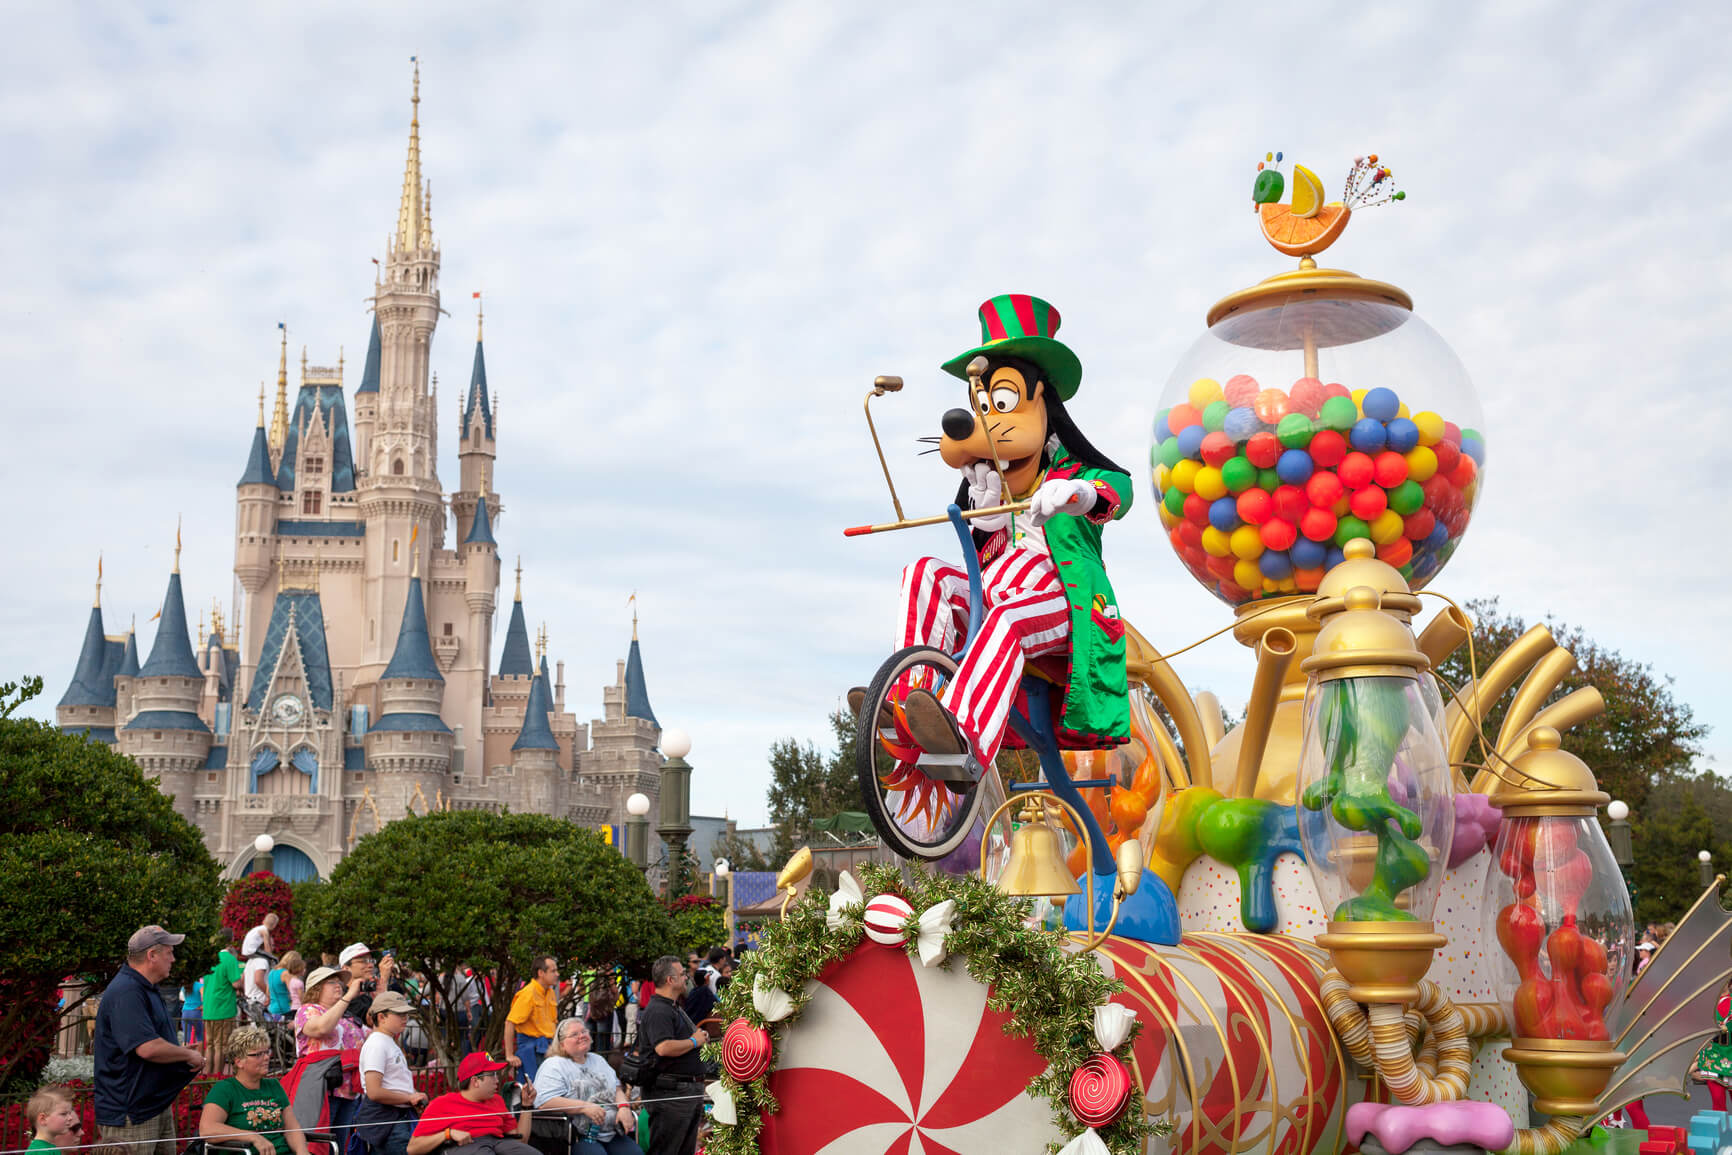 **PRICE DROP** SUMMER: Non-stop from Los Angeles to Orlando, Florida (& vice versa) for only $136 roundtrip (Aug-Dec dates)